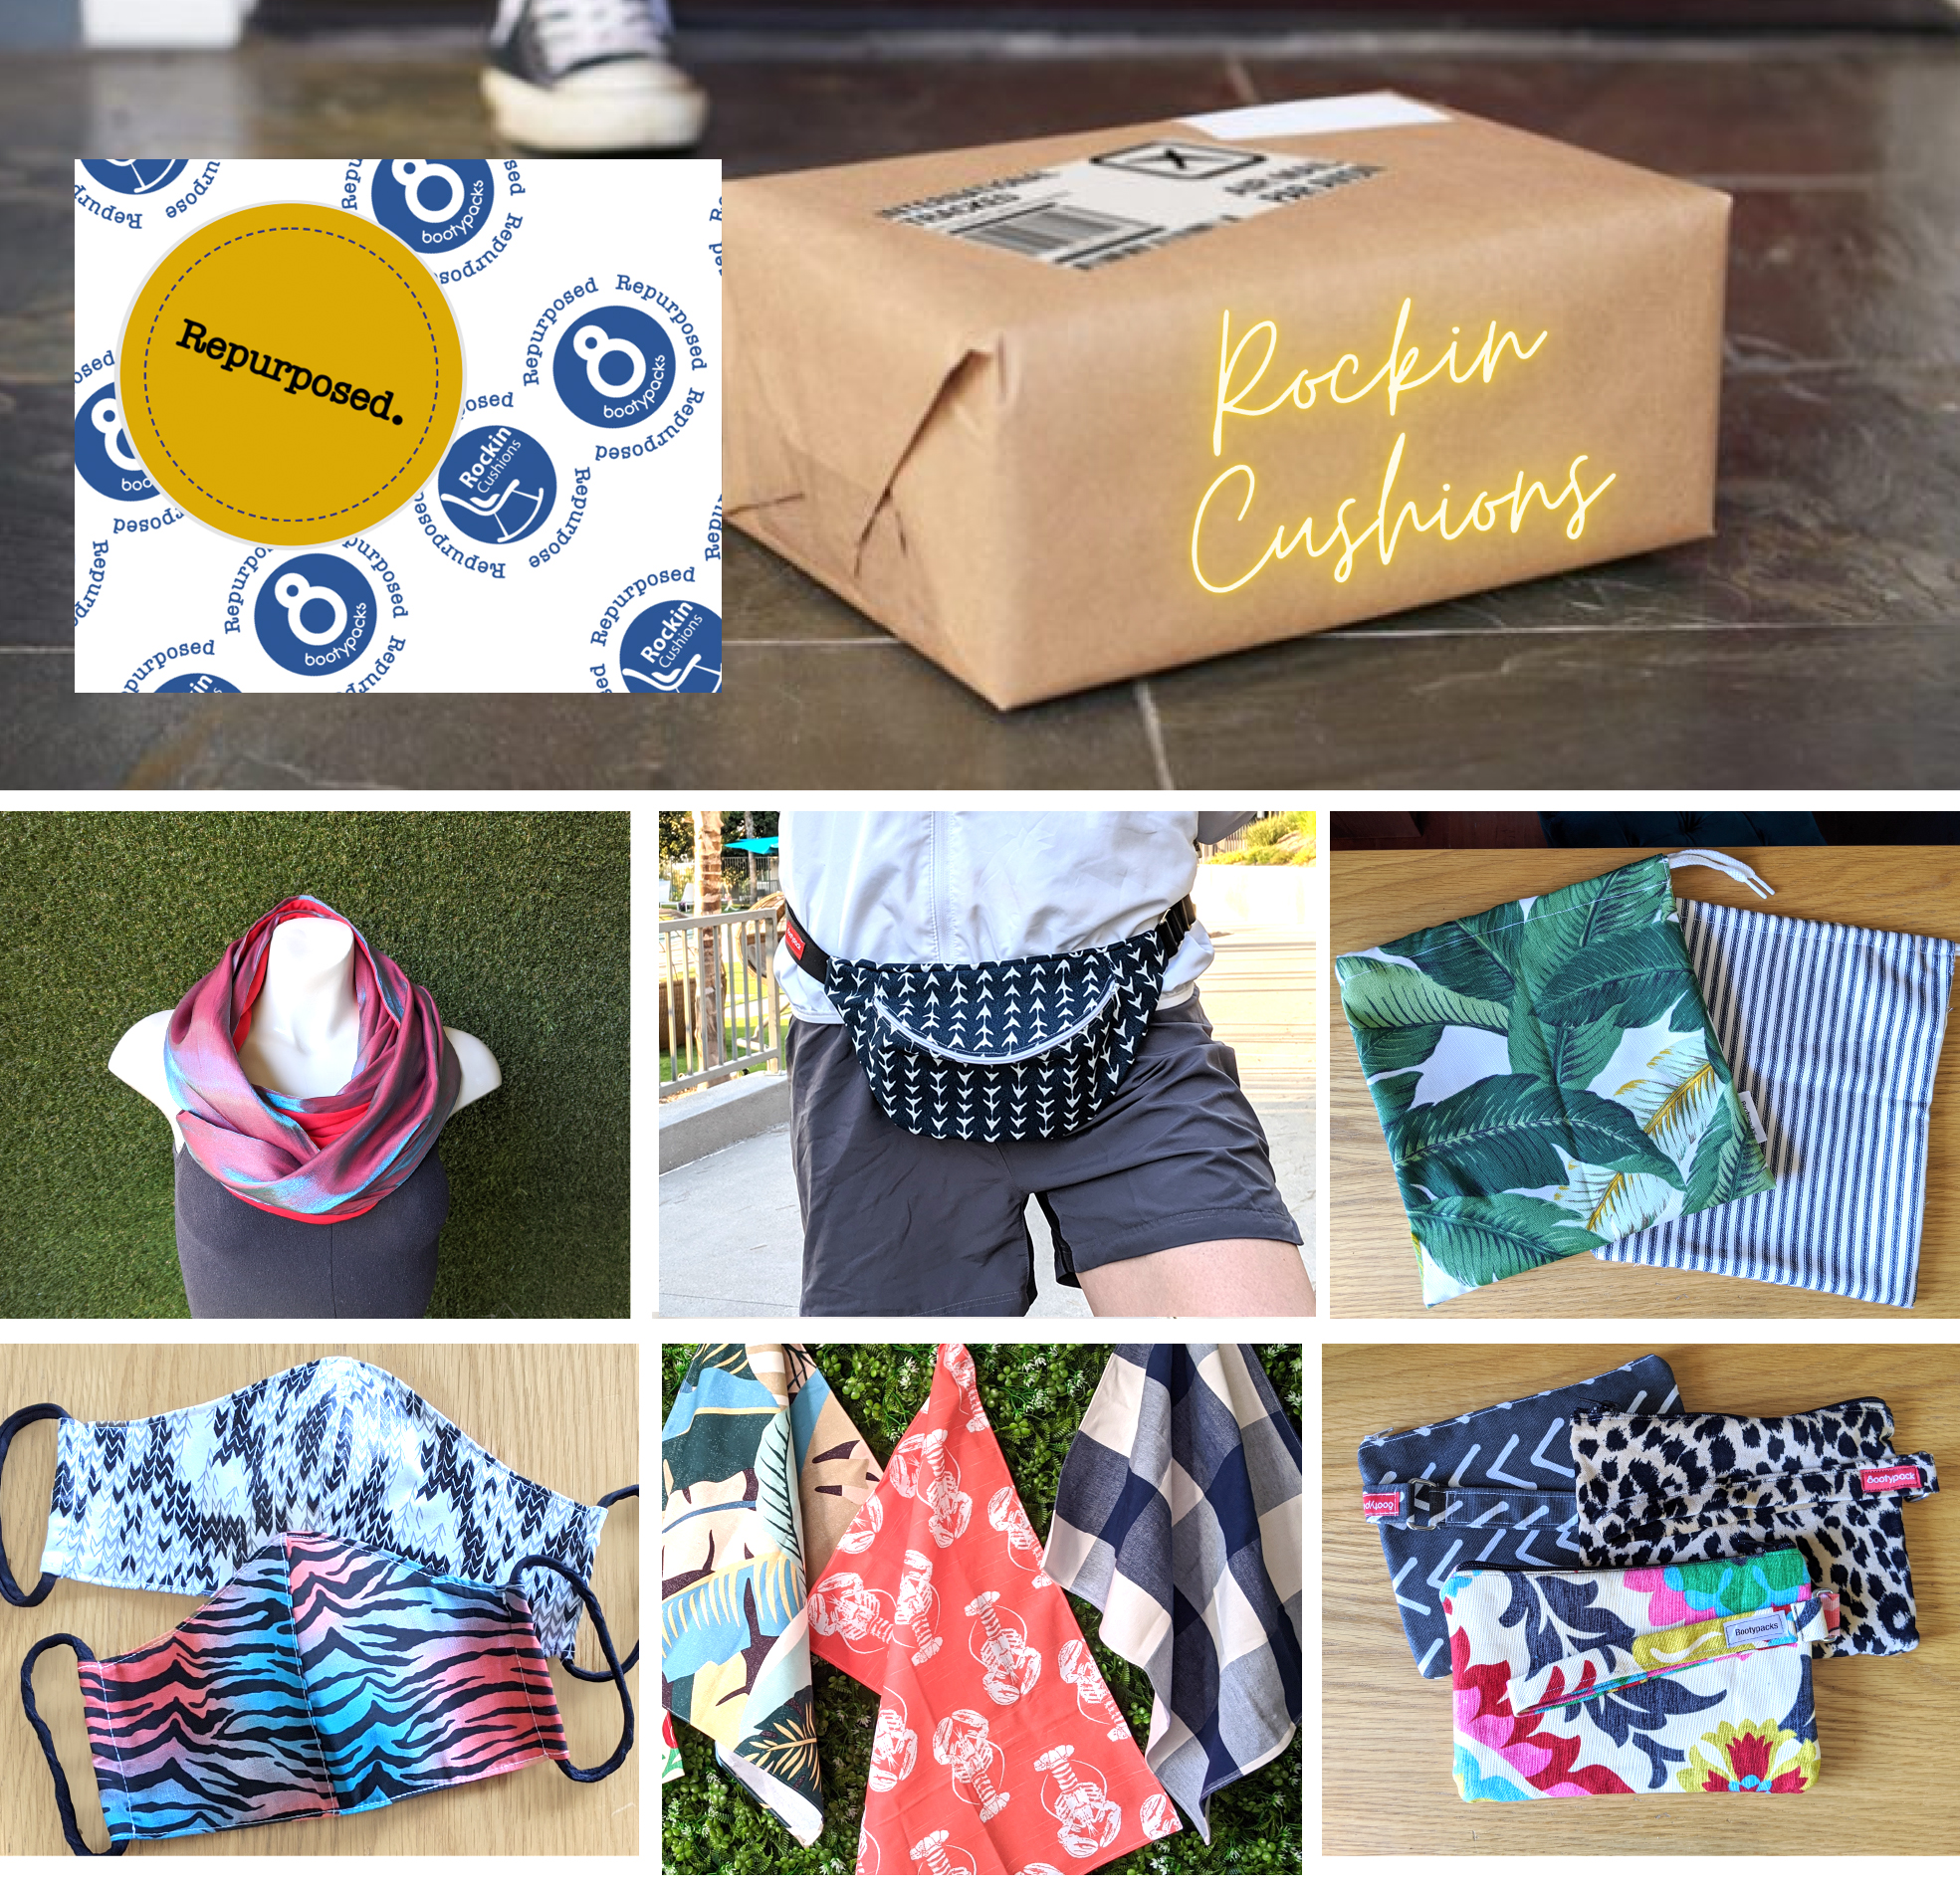 Bootypacks / Repurposed Subscription Box